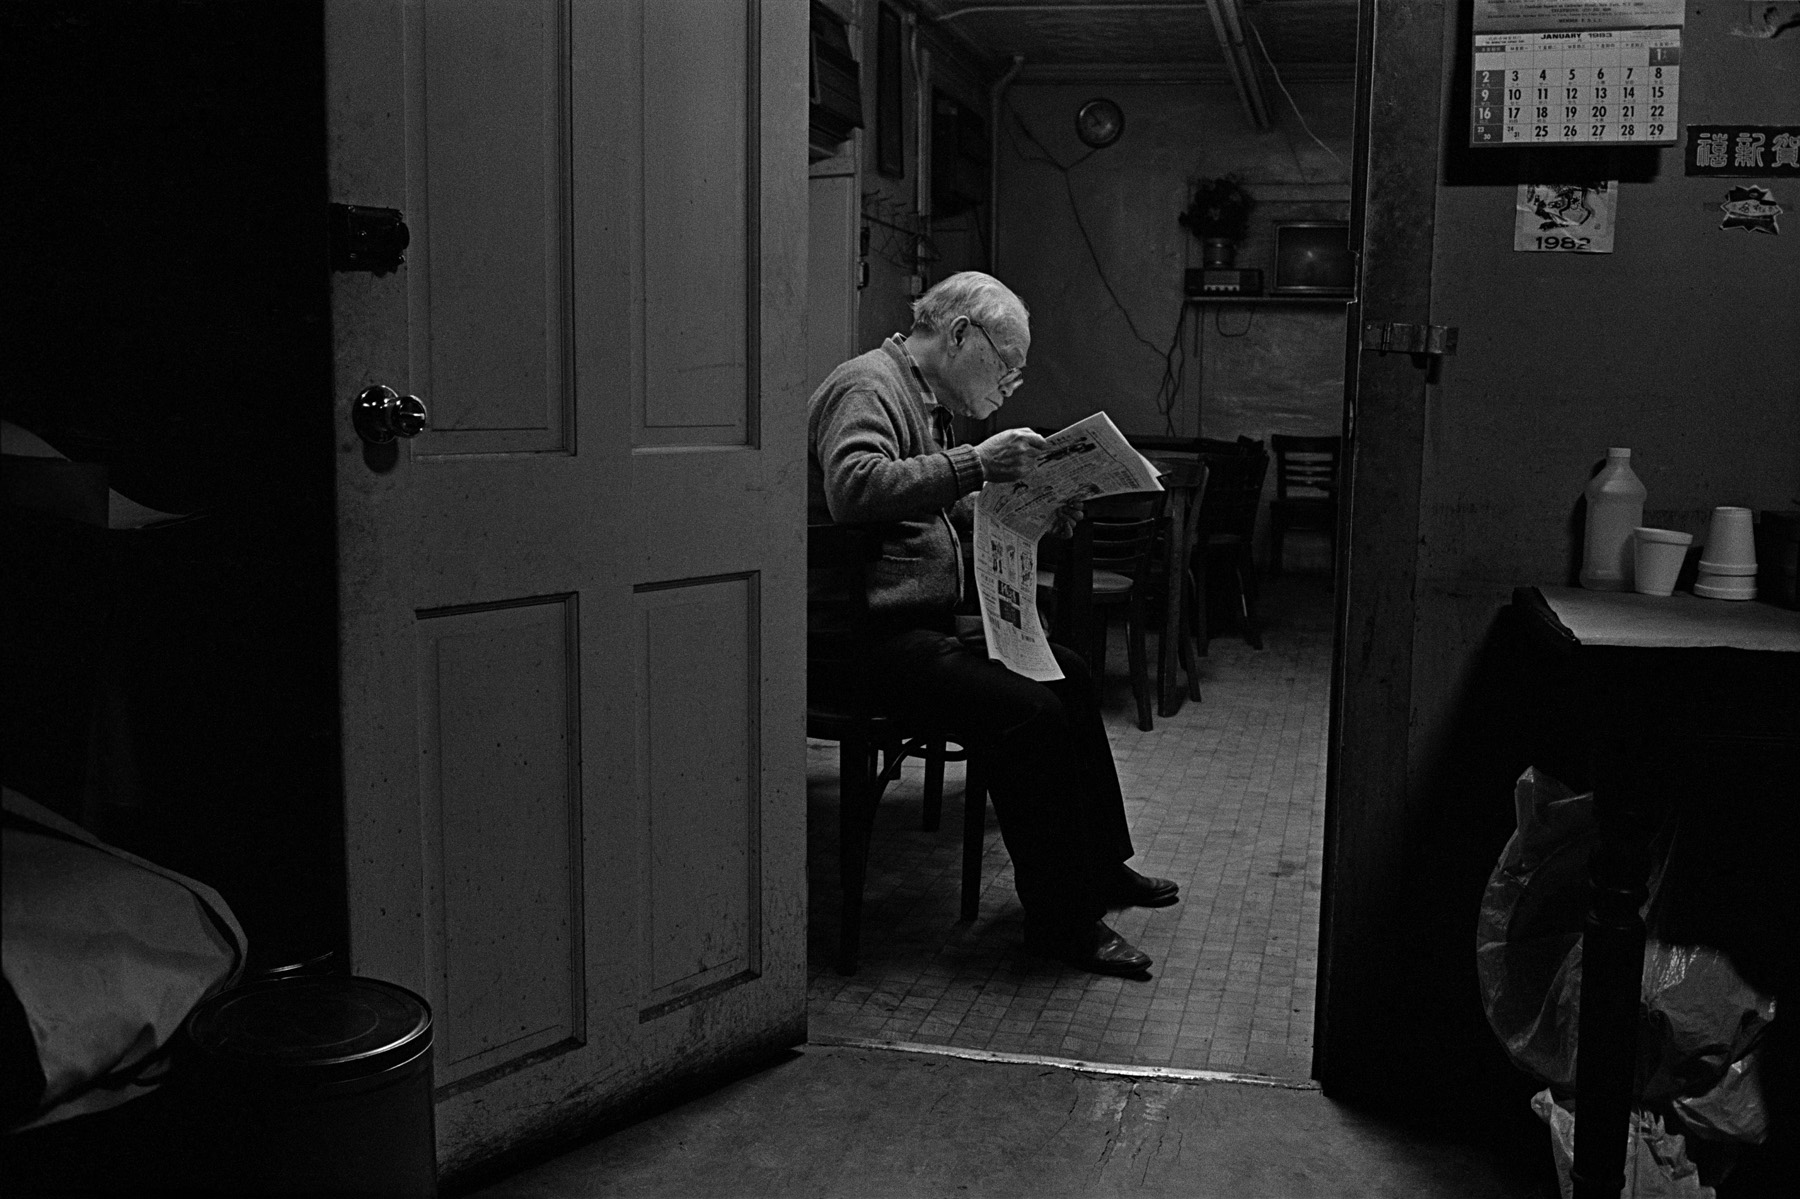 Mr. Ng sits in a doorway reading a newspaper in the apartment he shares with 3 other men on Bayard St., New York Chinatown, 1982.